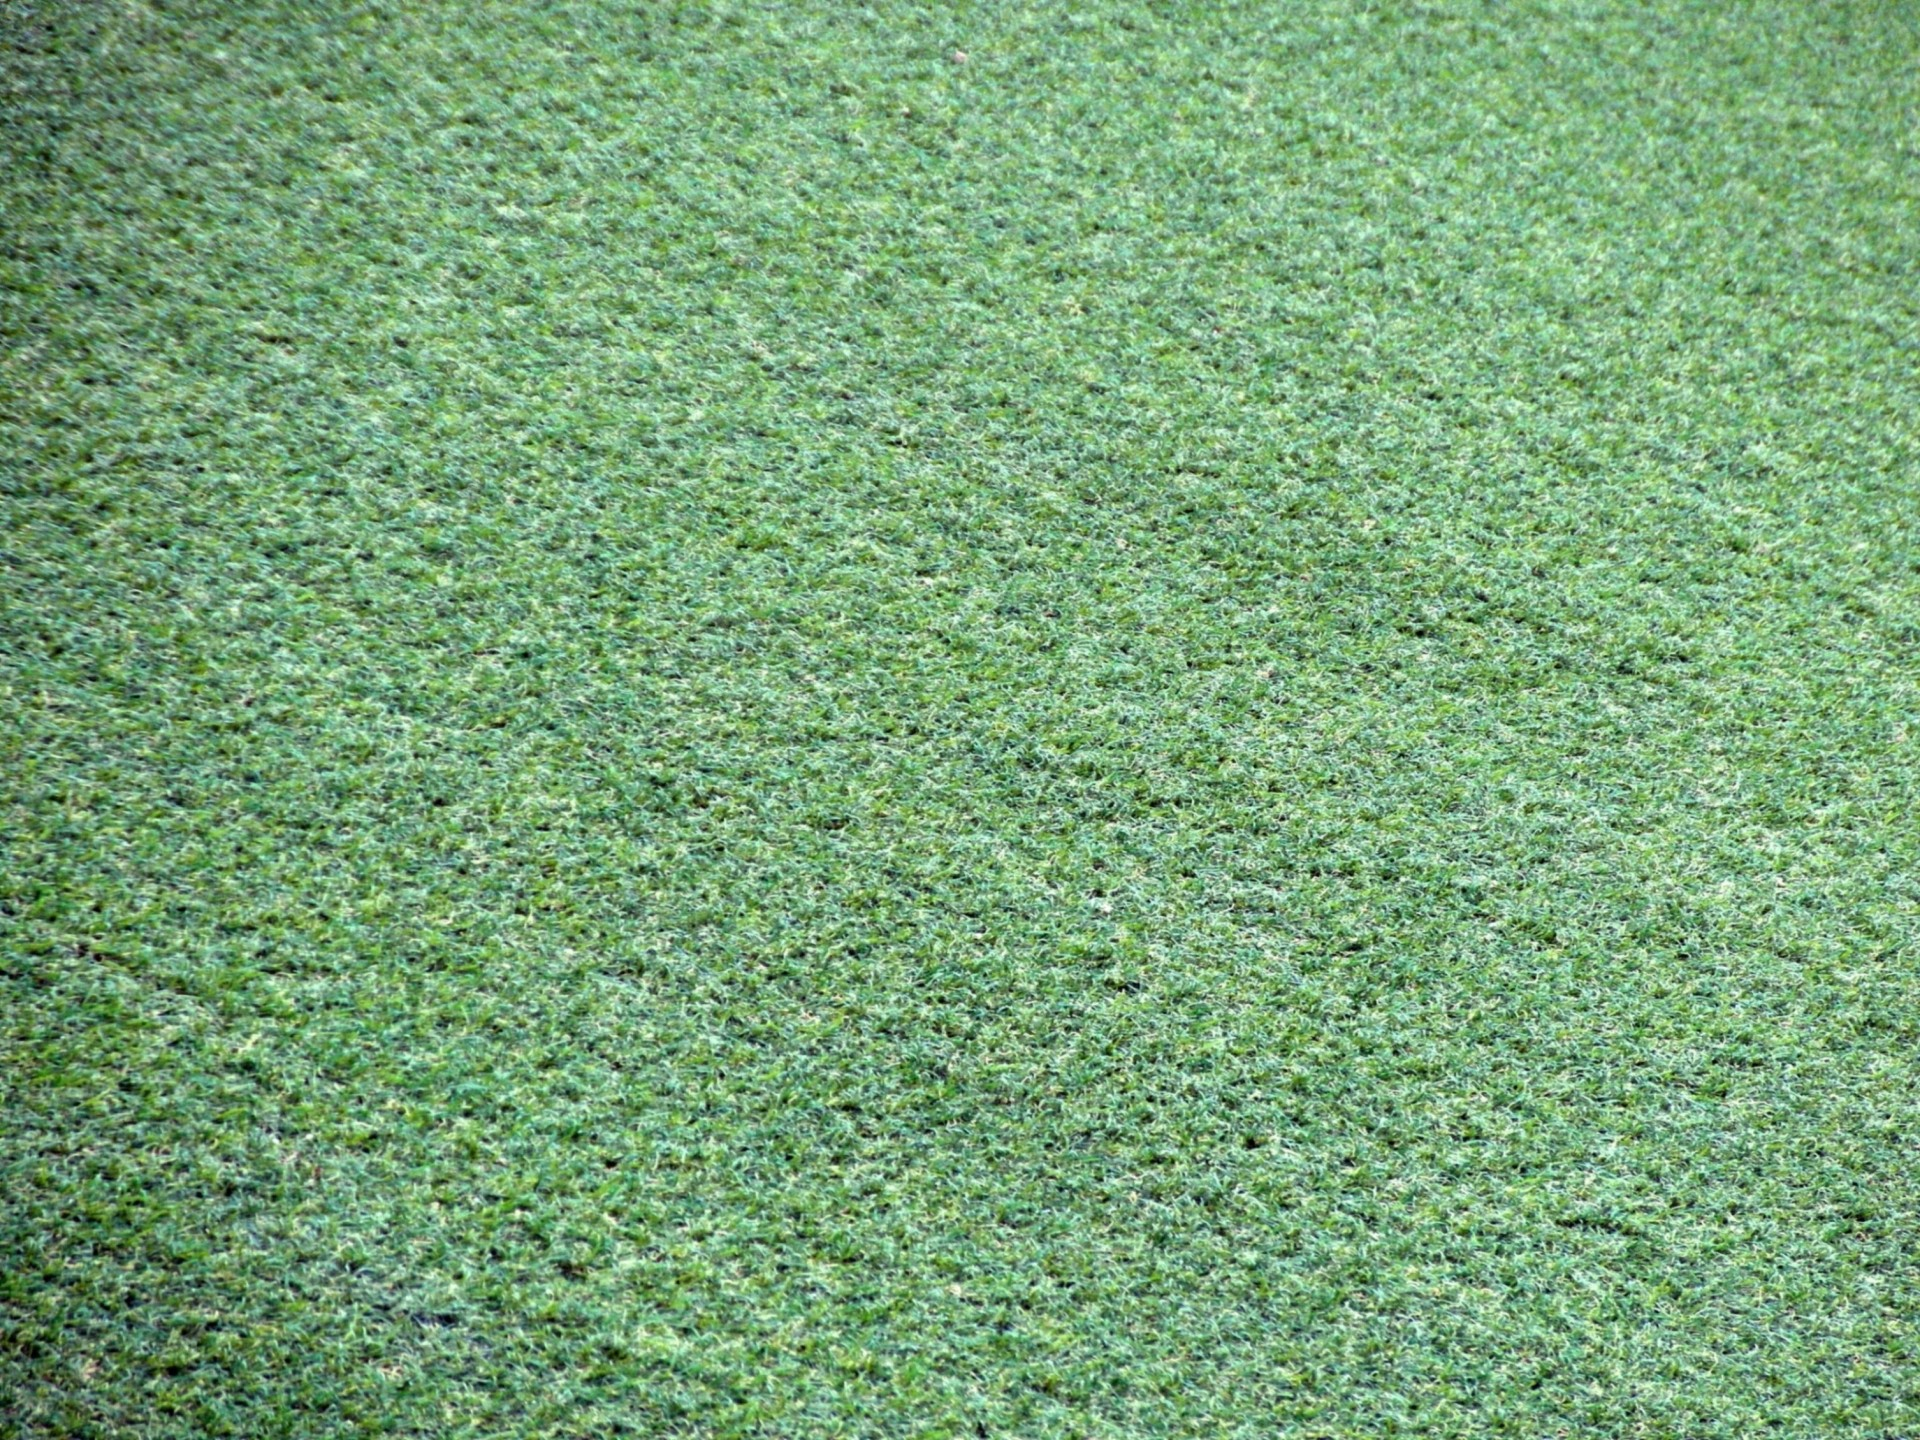 Artificial Grass Background Free Stock Photo - Public Domain Pictures